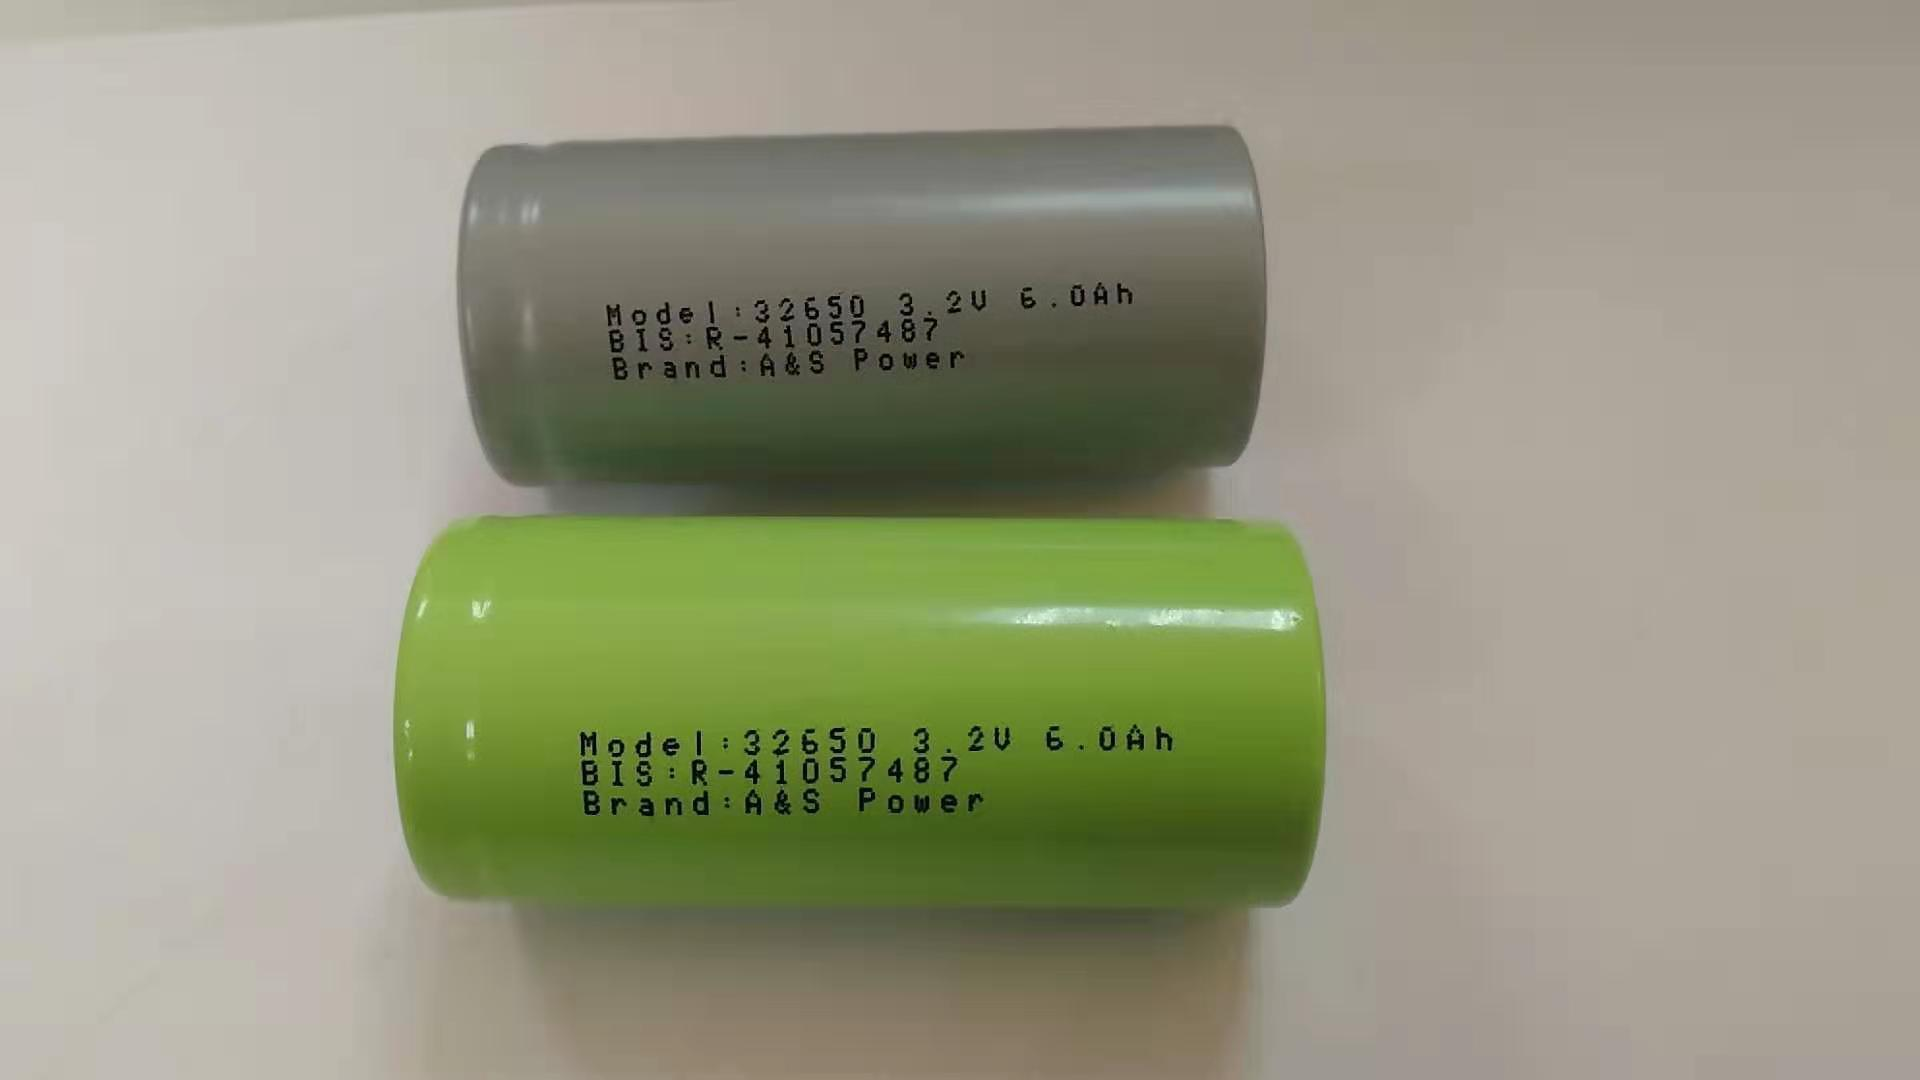 32650 32700 3.2V 6000mAh lifepo4 Battery Cell